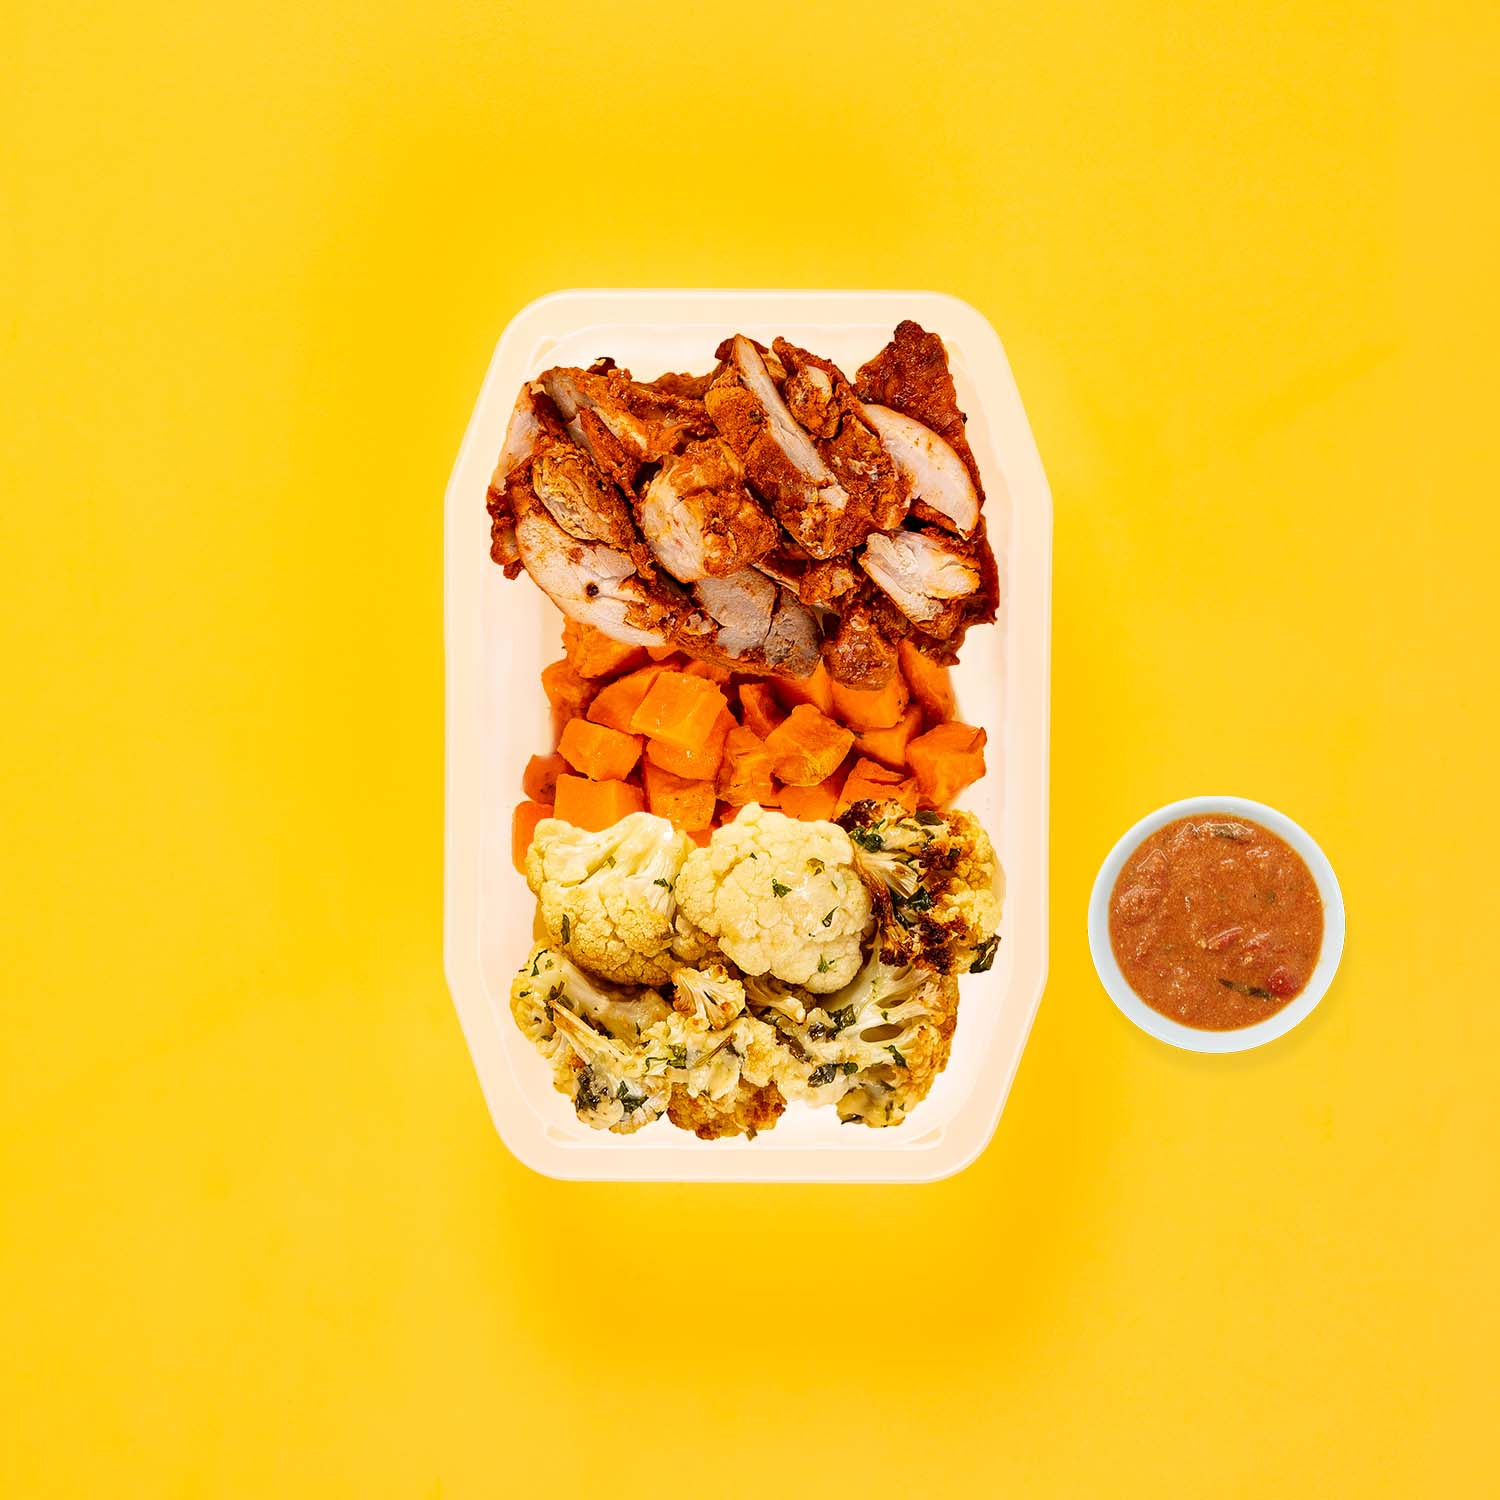 150g Chipotle Chicken Thigh 100g Rosemary Baked Sweet Potato 200g Parmesan Cauliflower Thai Red Curry